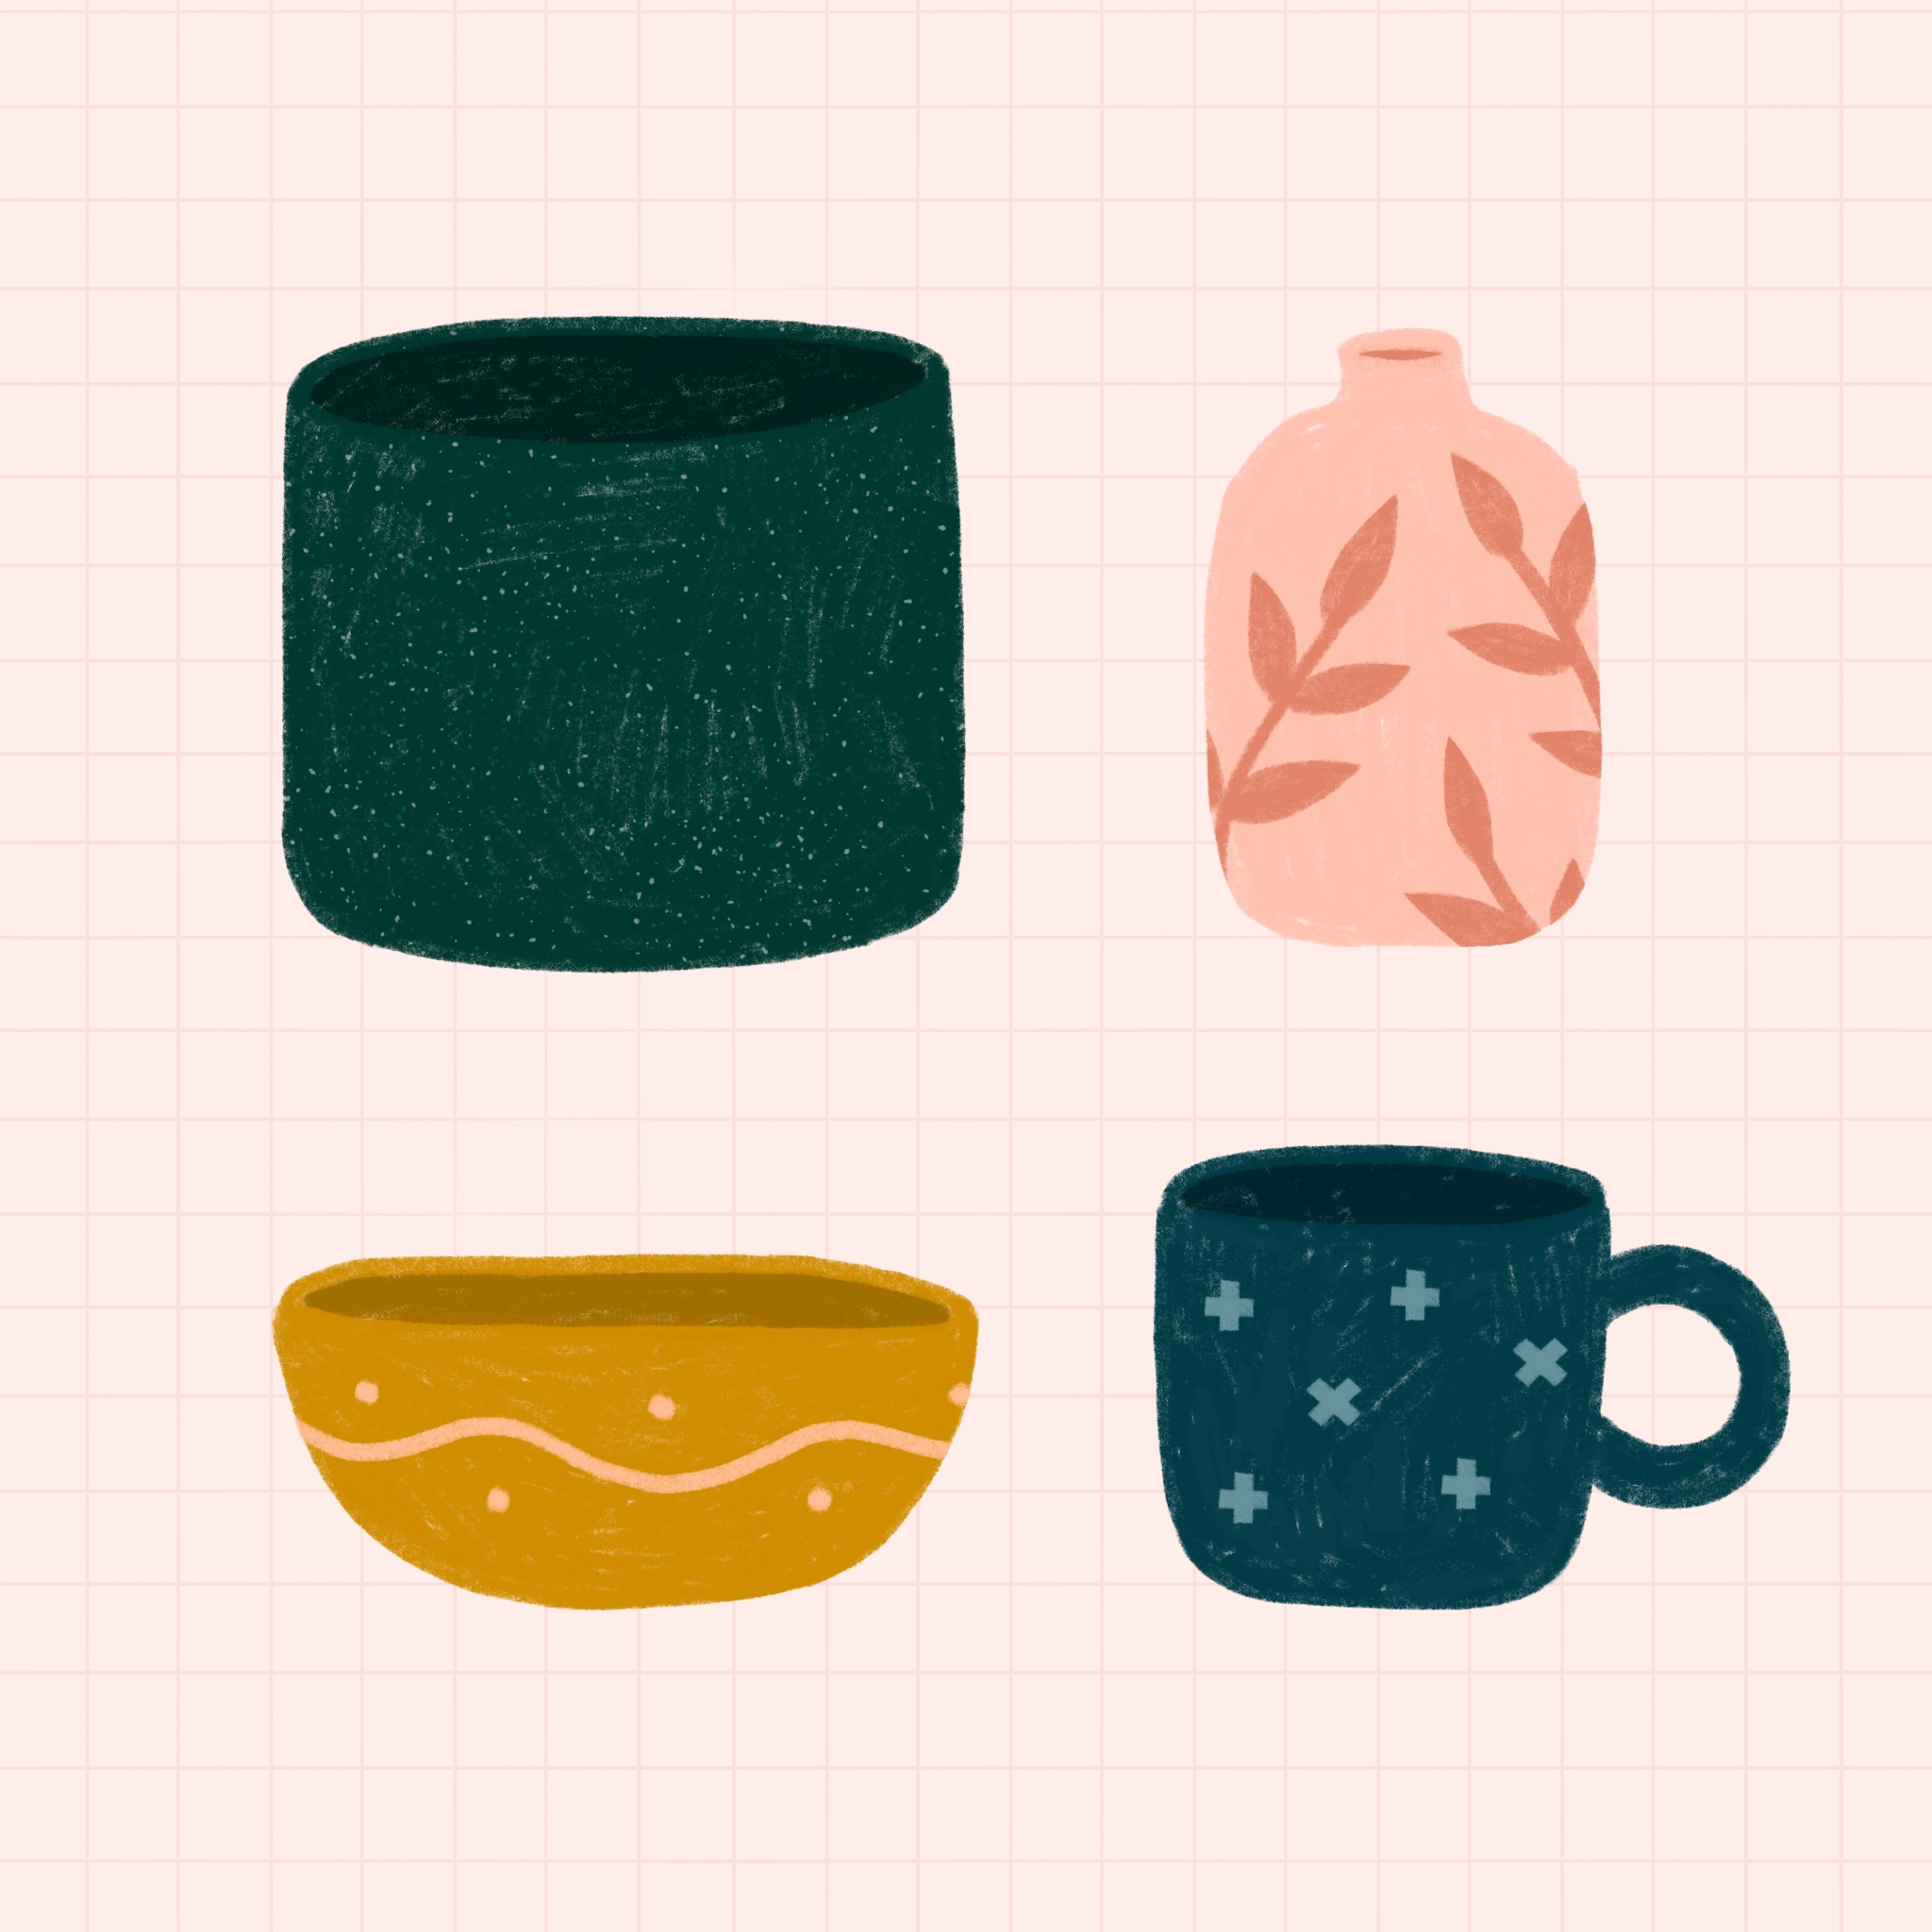 An illustration of several ceramic objects